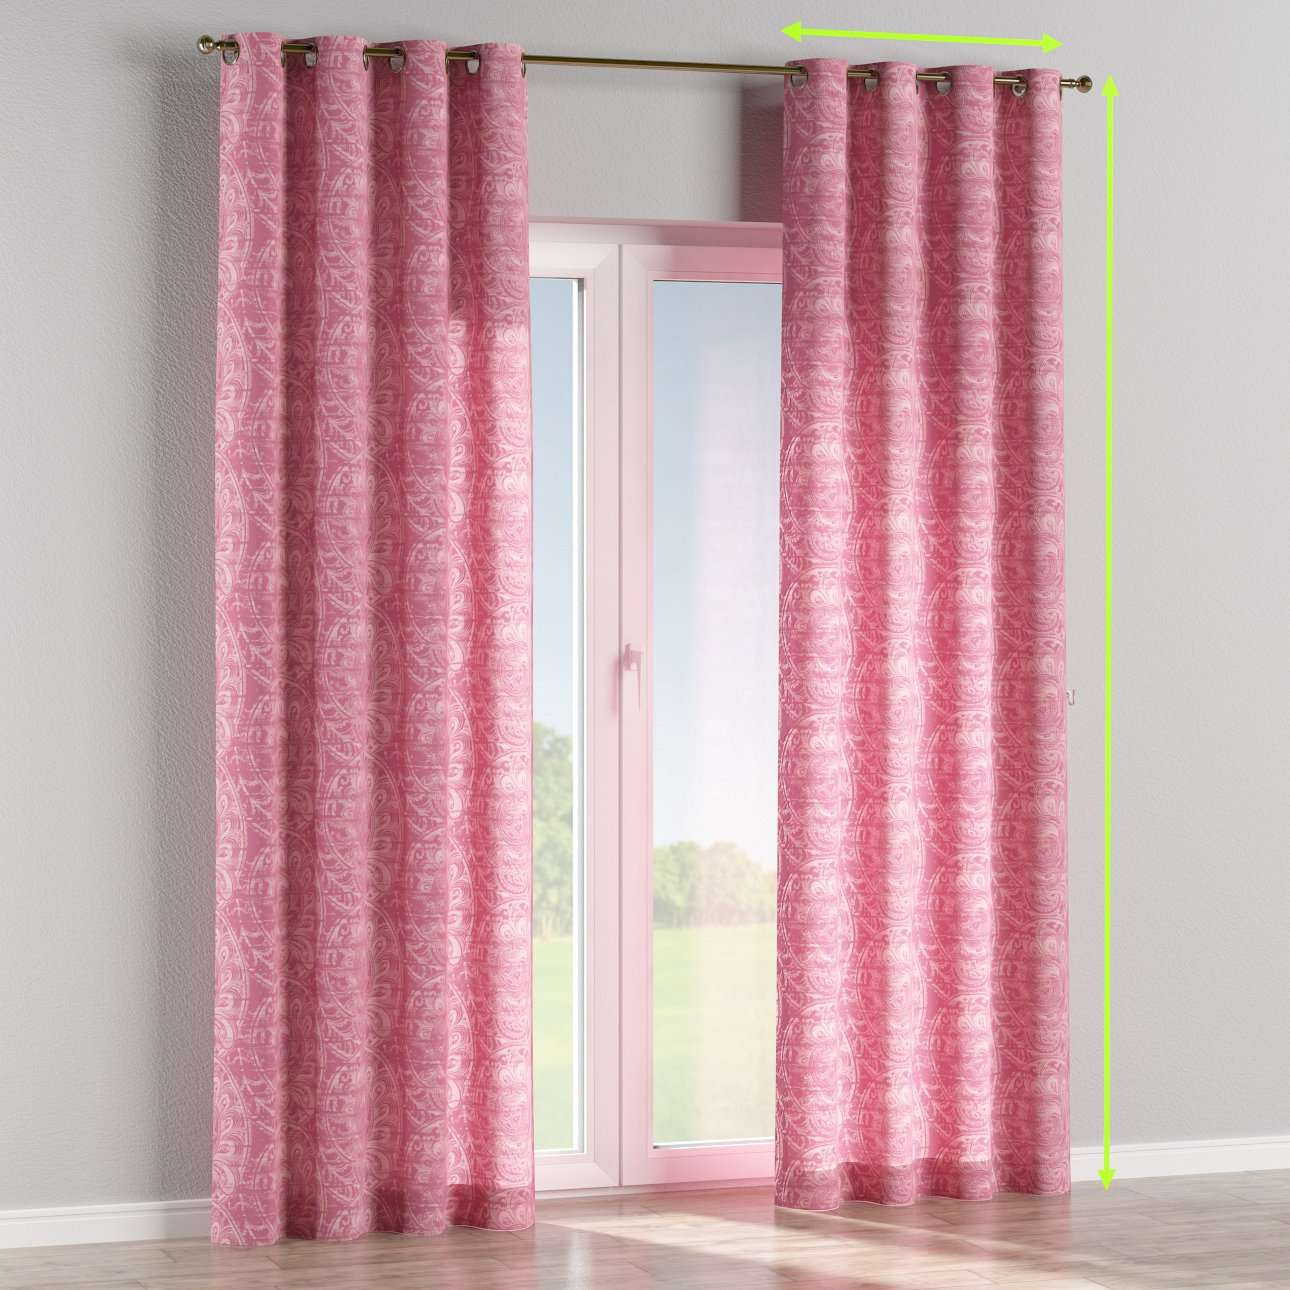 Eyelet lined curtains in collection Mirella, fabric: 143-07